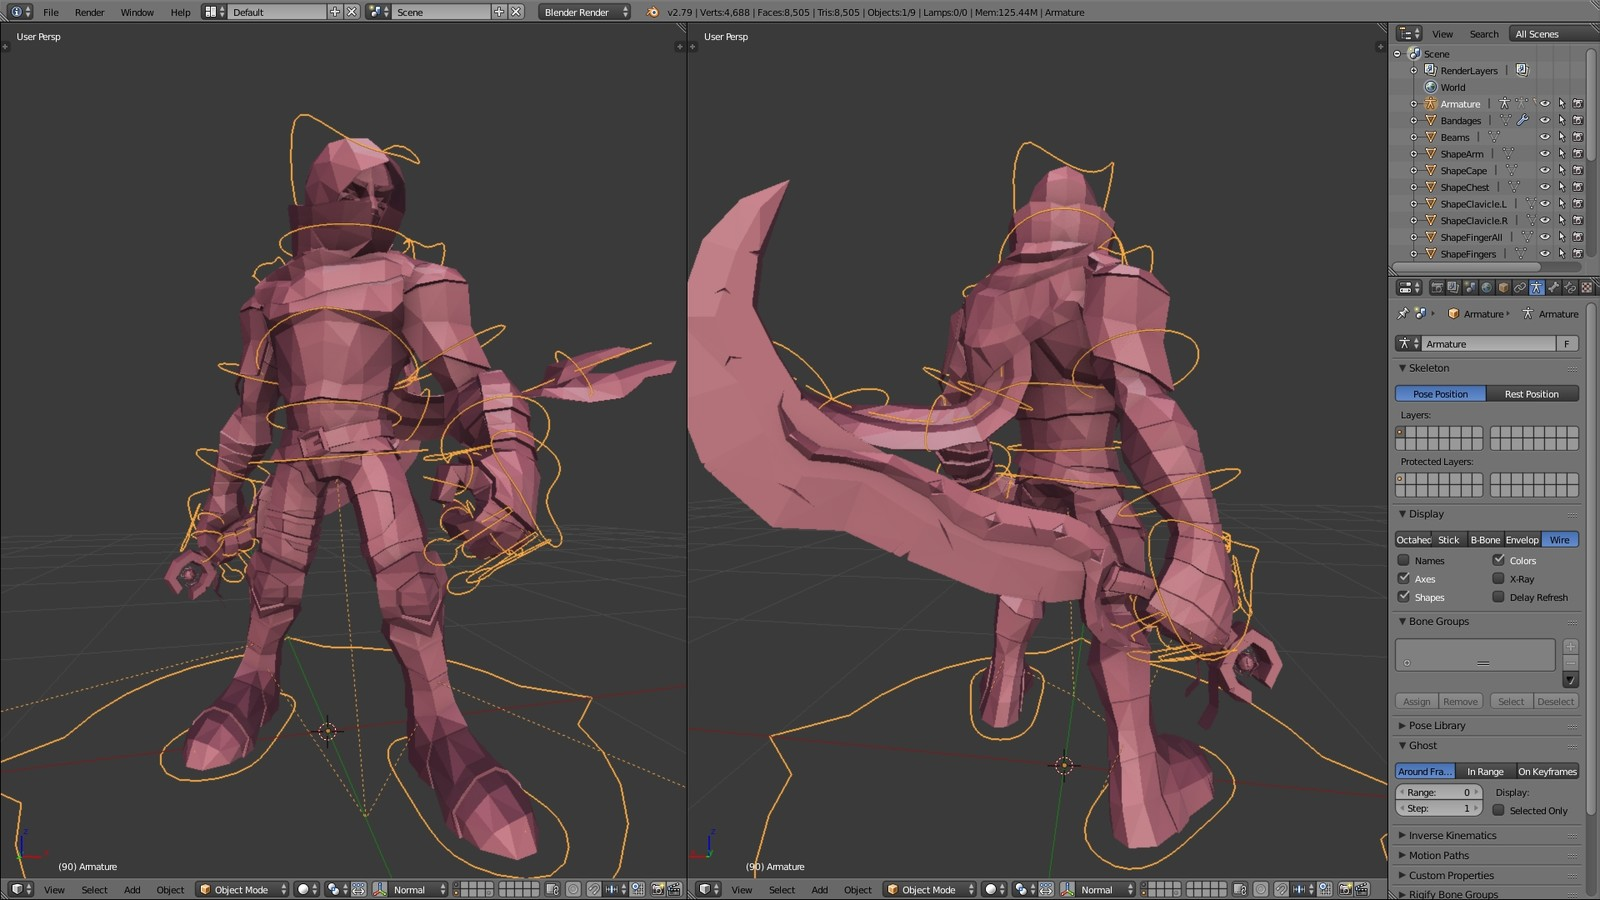 Blender Viewport - Rig